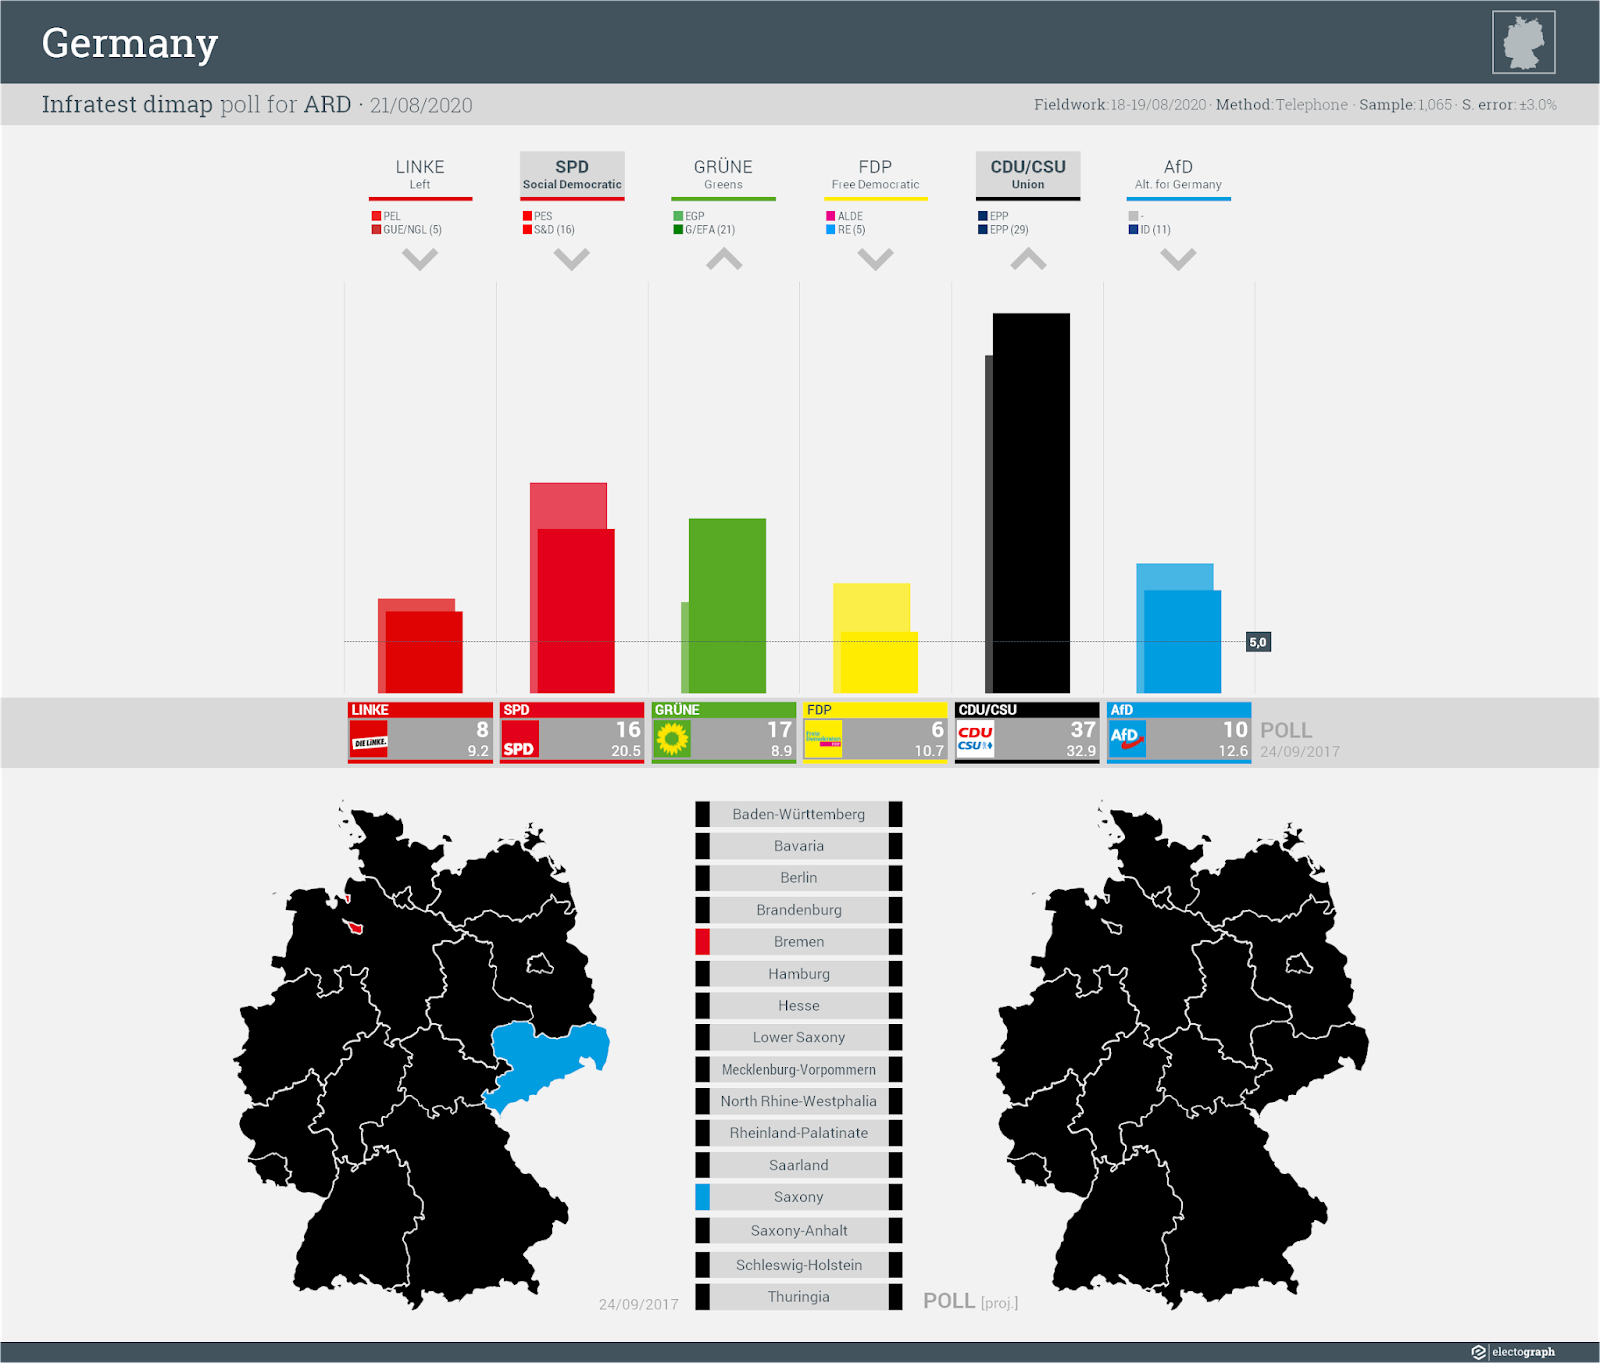 GERMANY: Infratest dimap poll chart for ARD, 21 August 2020